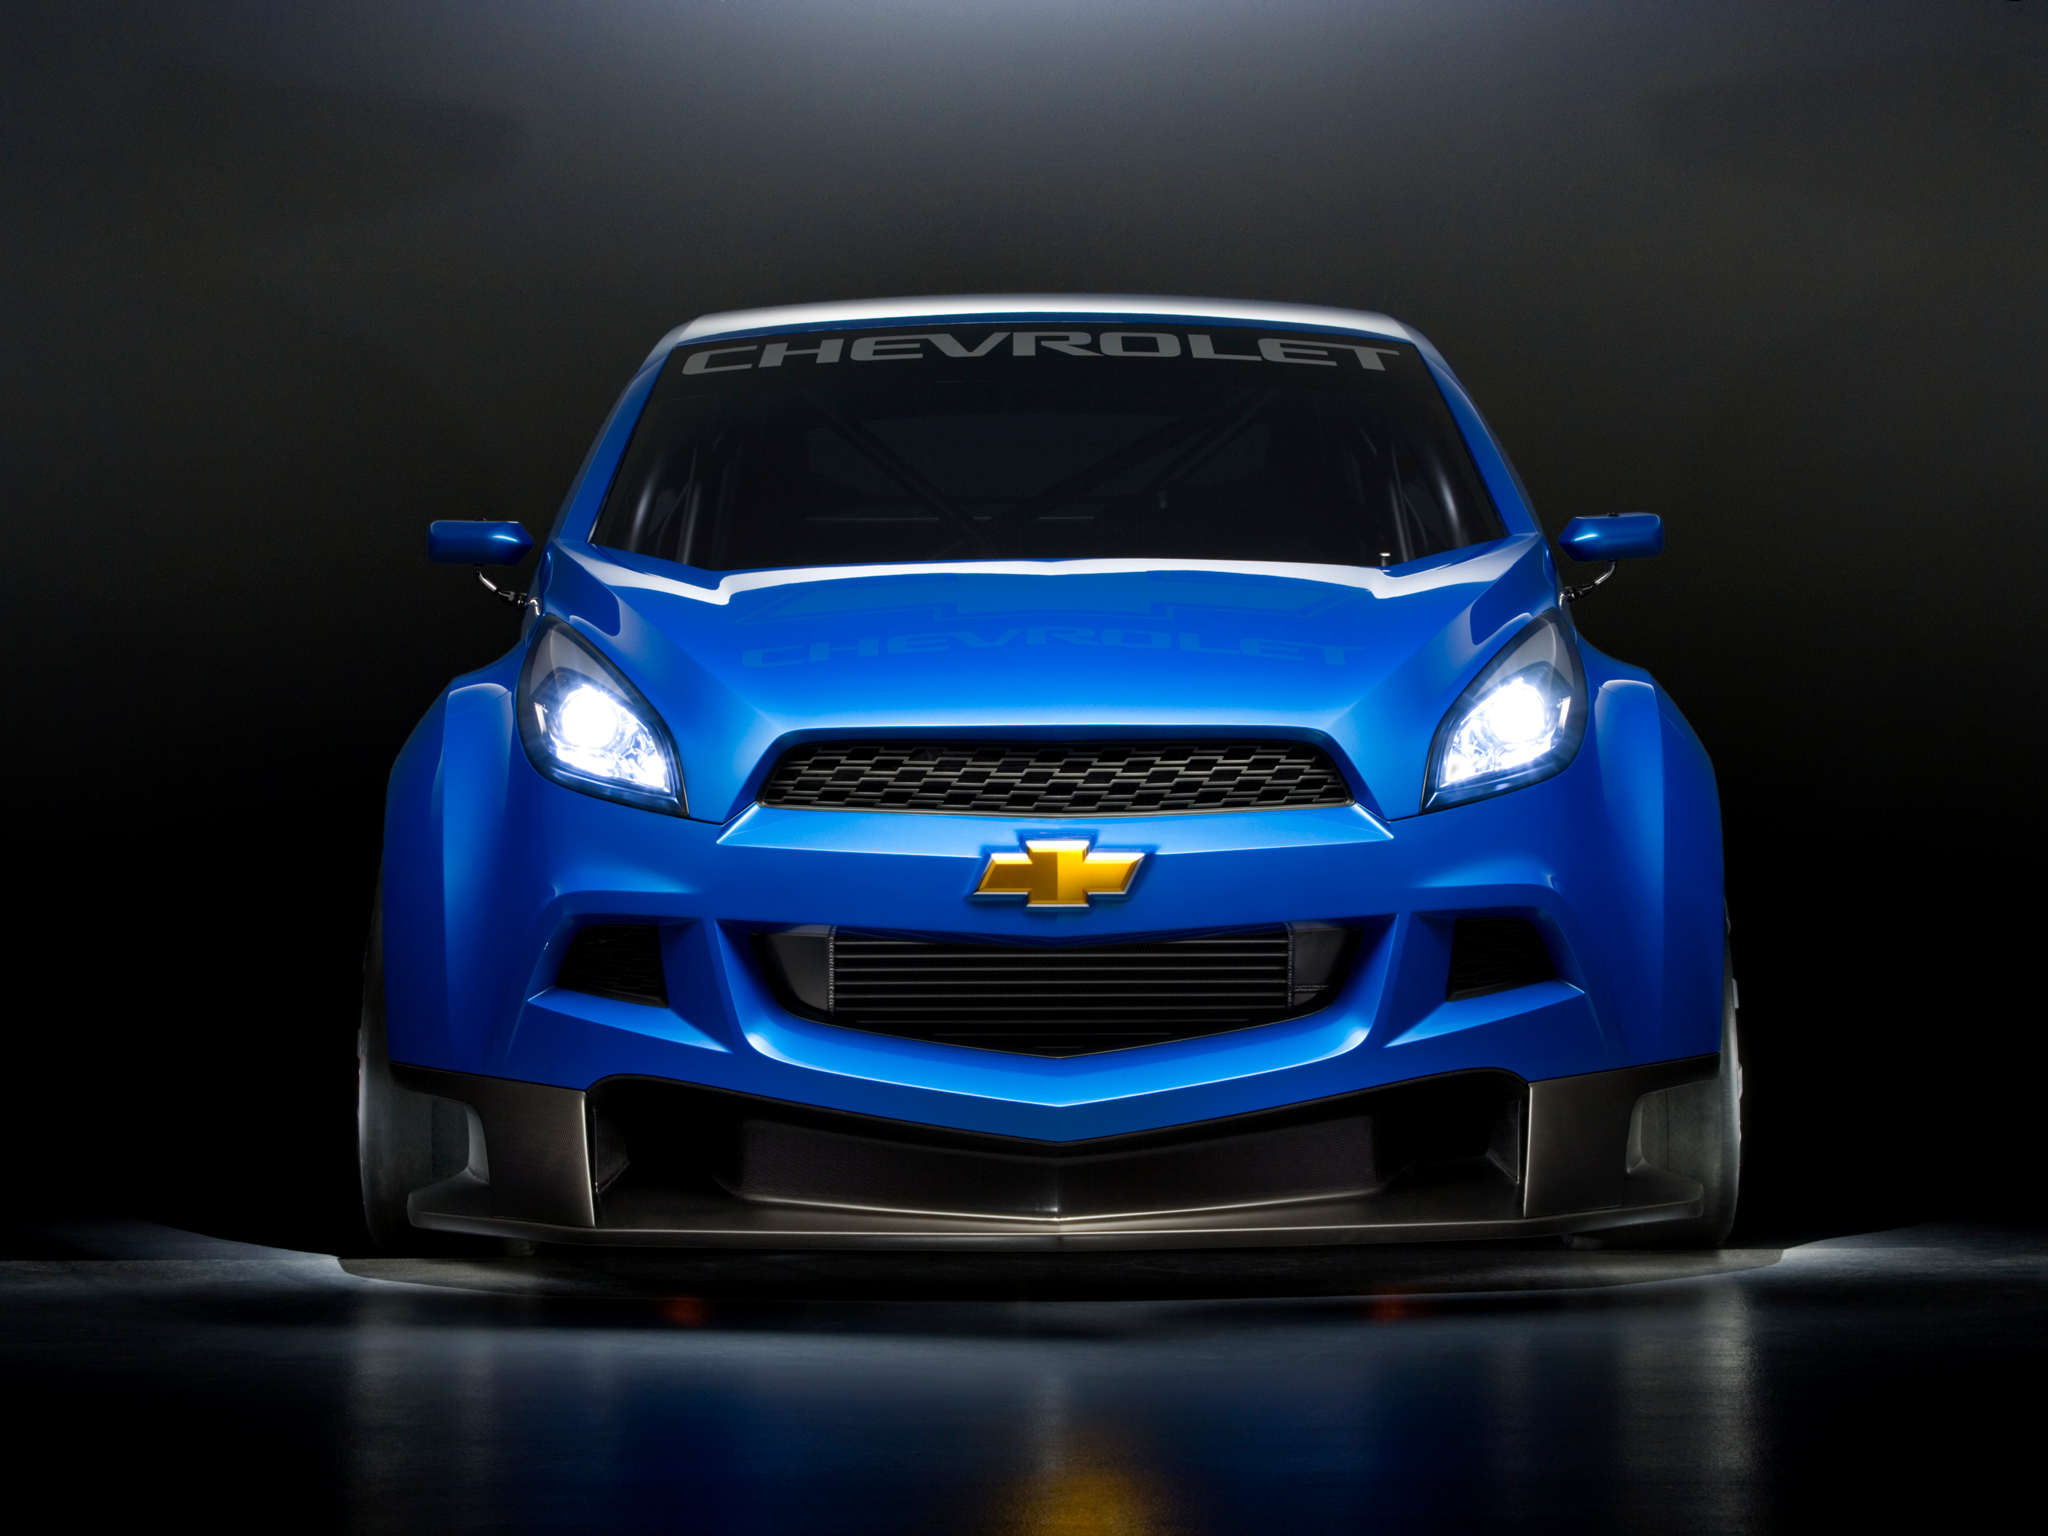 2017 Chevrolet WTCC Ultra Concept photo - 1